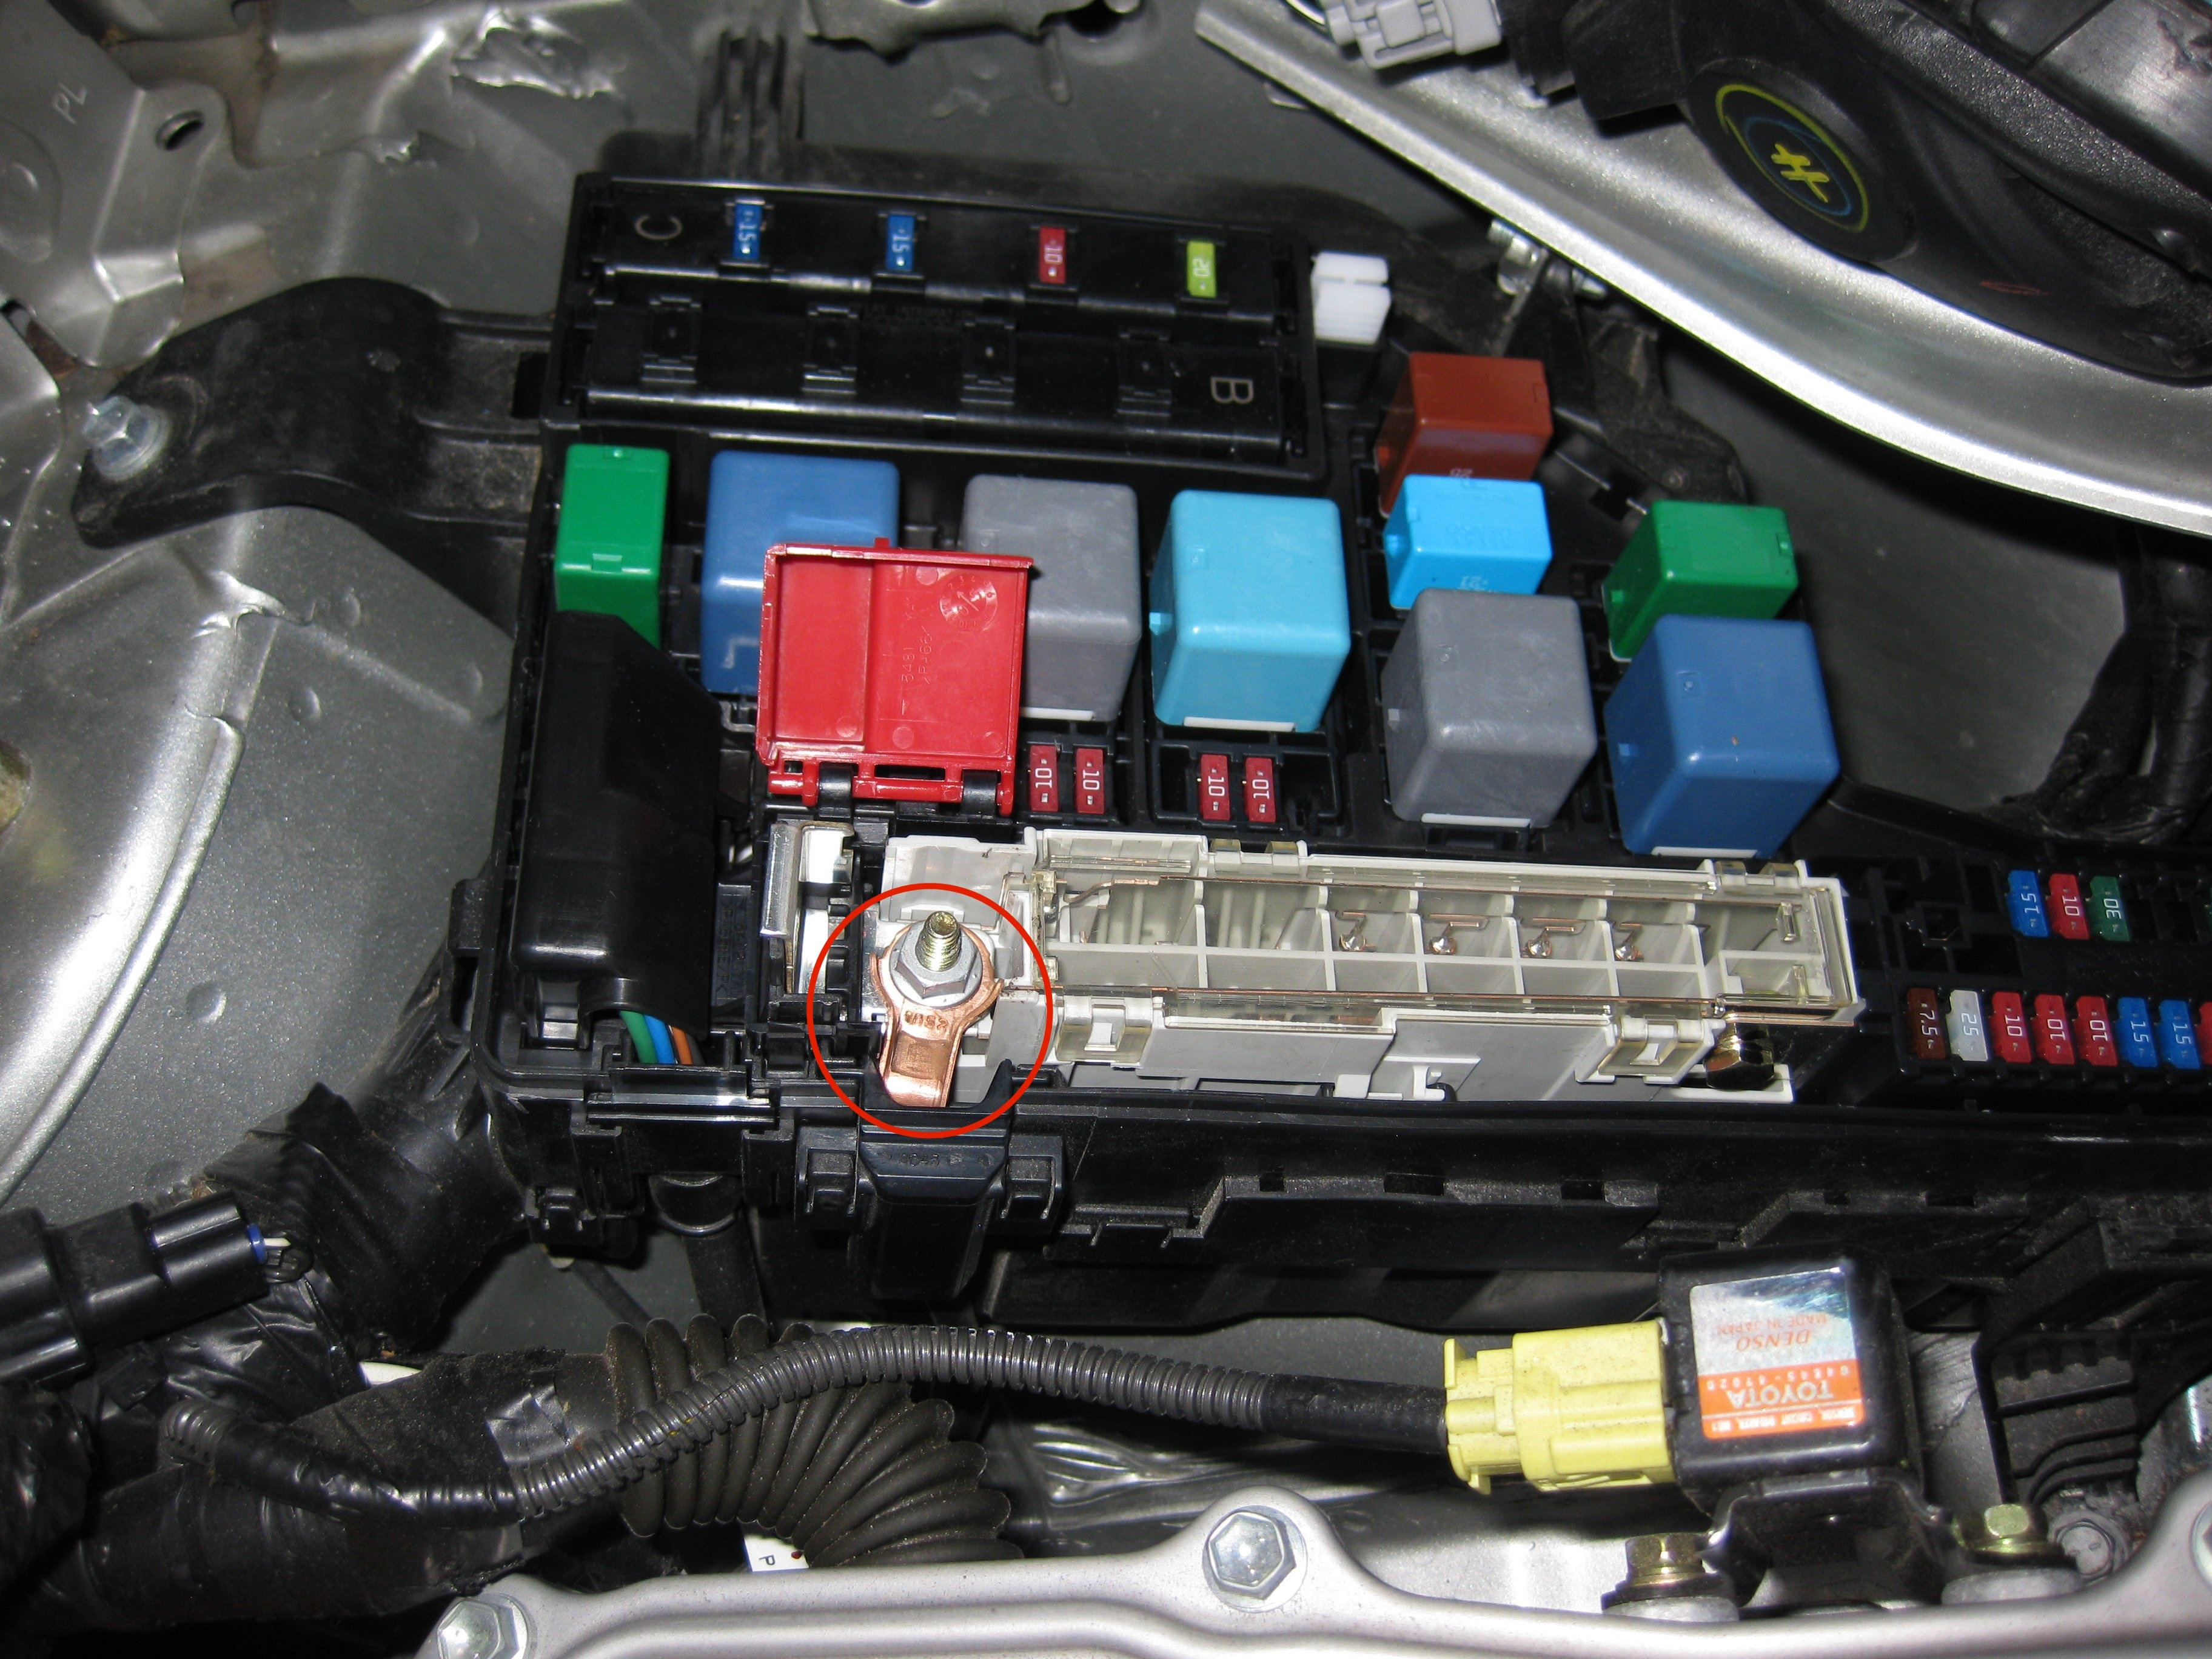 Prius_Fusebox_with_exposed_jumpstart_terminal file prius fusebox with exposed jumpstart terminal jpg wikimedia 2010 toyota prius fuse box cover at edmiracle.co